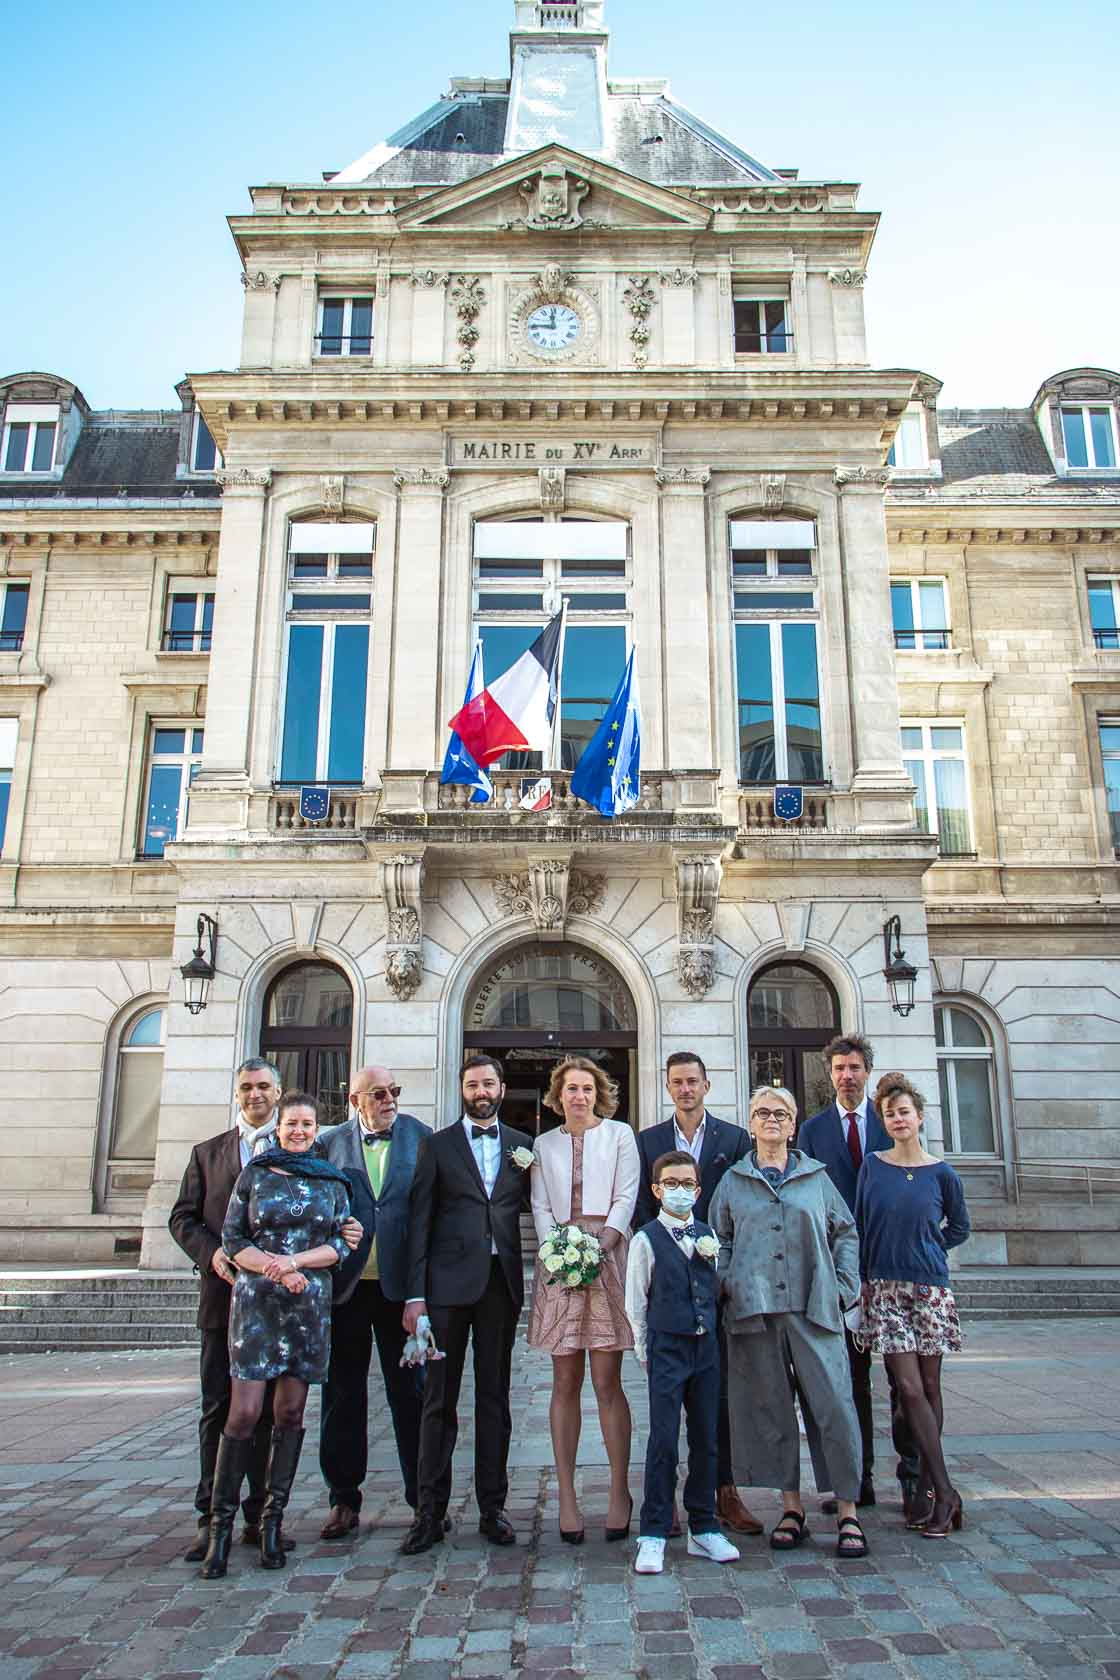 Wedding group portrait of the Town Hall of the 15th arrondissement in Paris